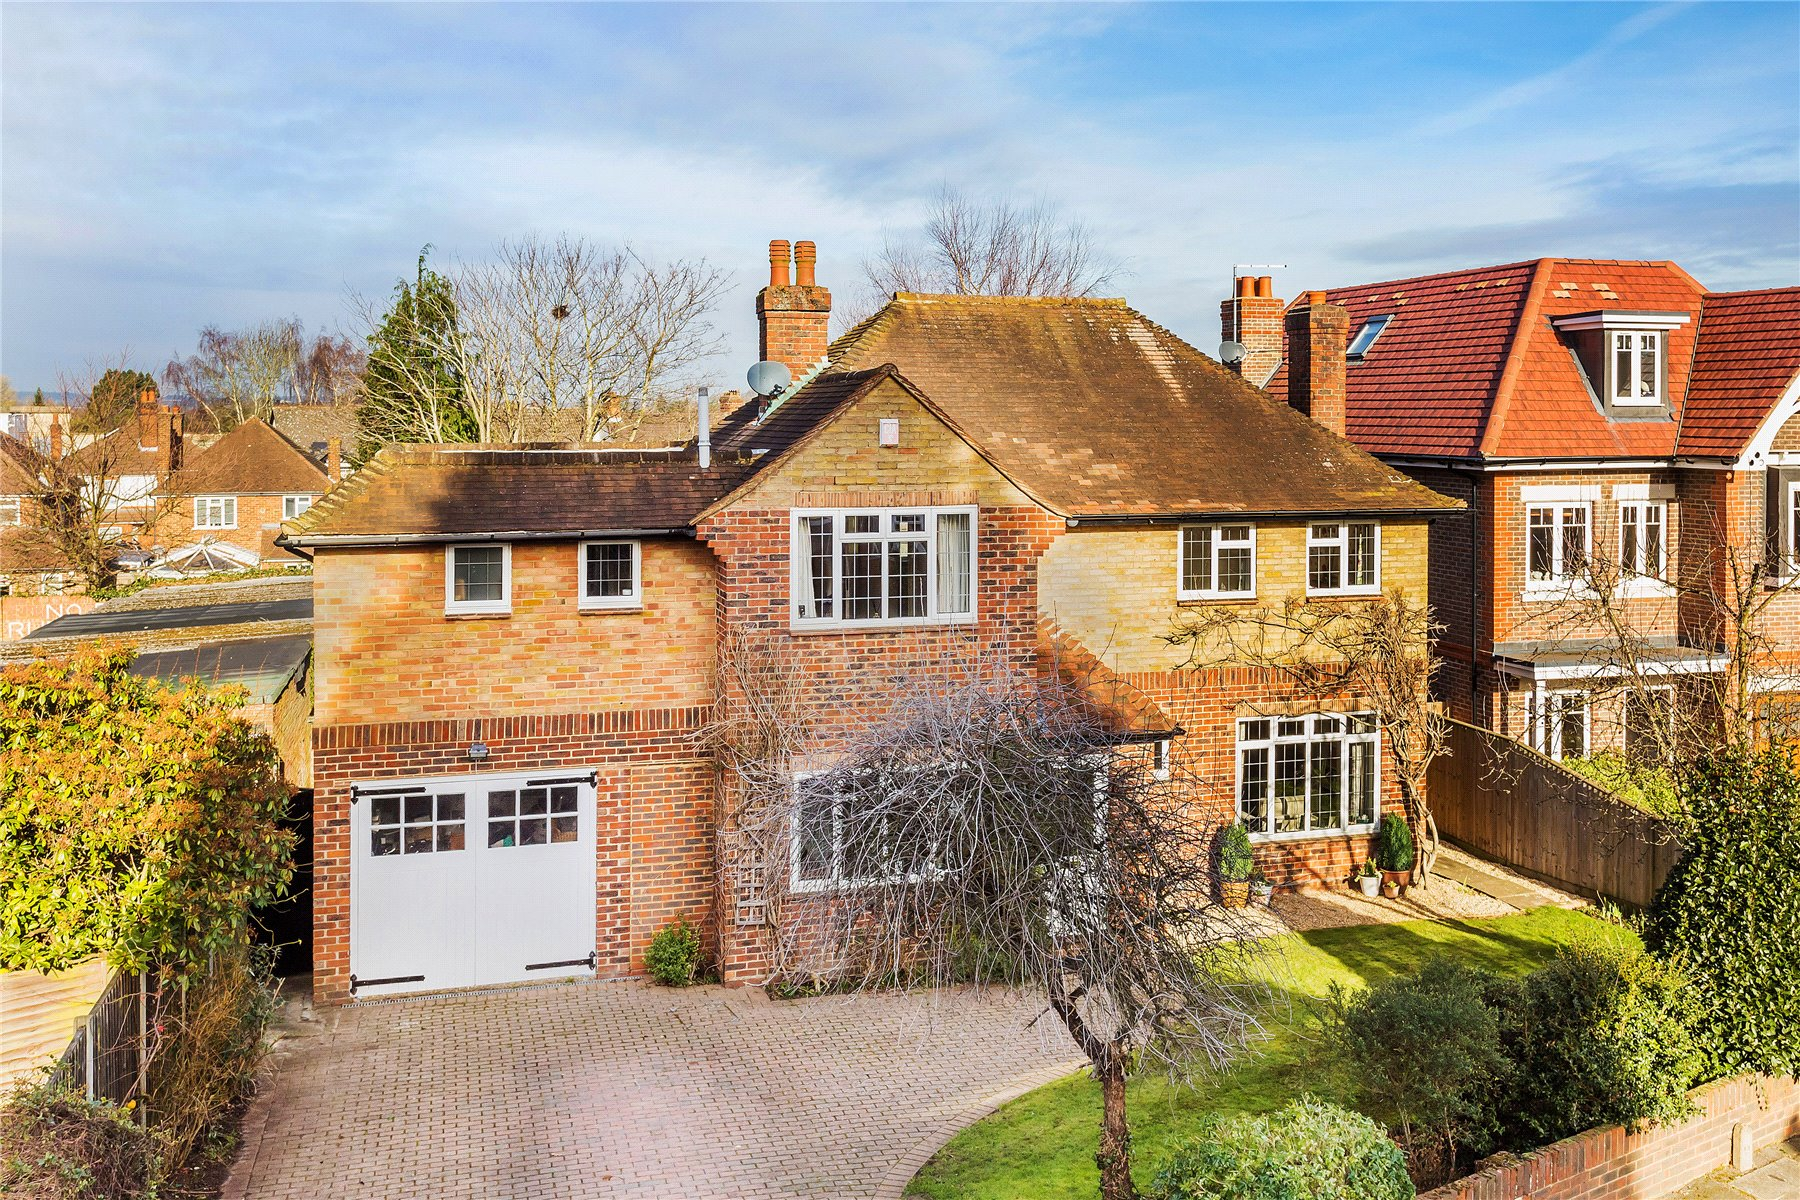 4 Bedrooms Detached House for sale in Mount Hermon Road, Woking, Surrey, GU22